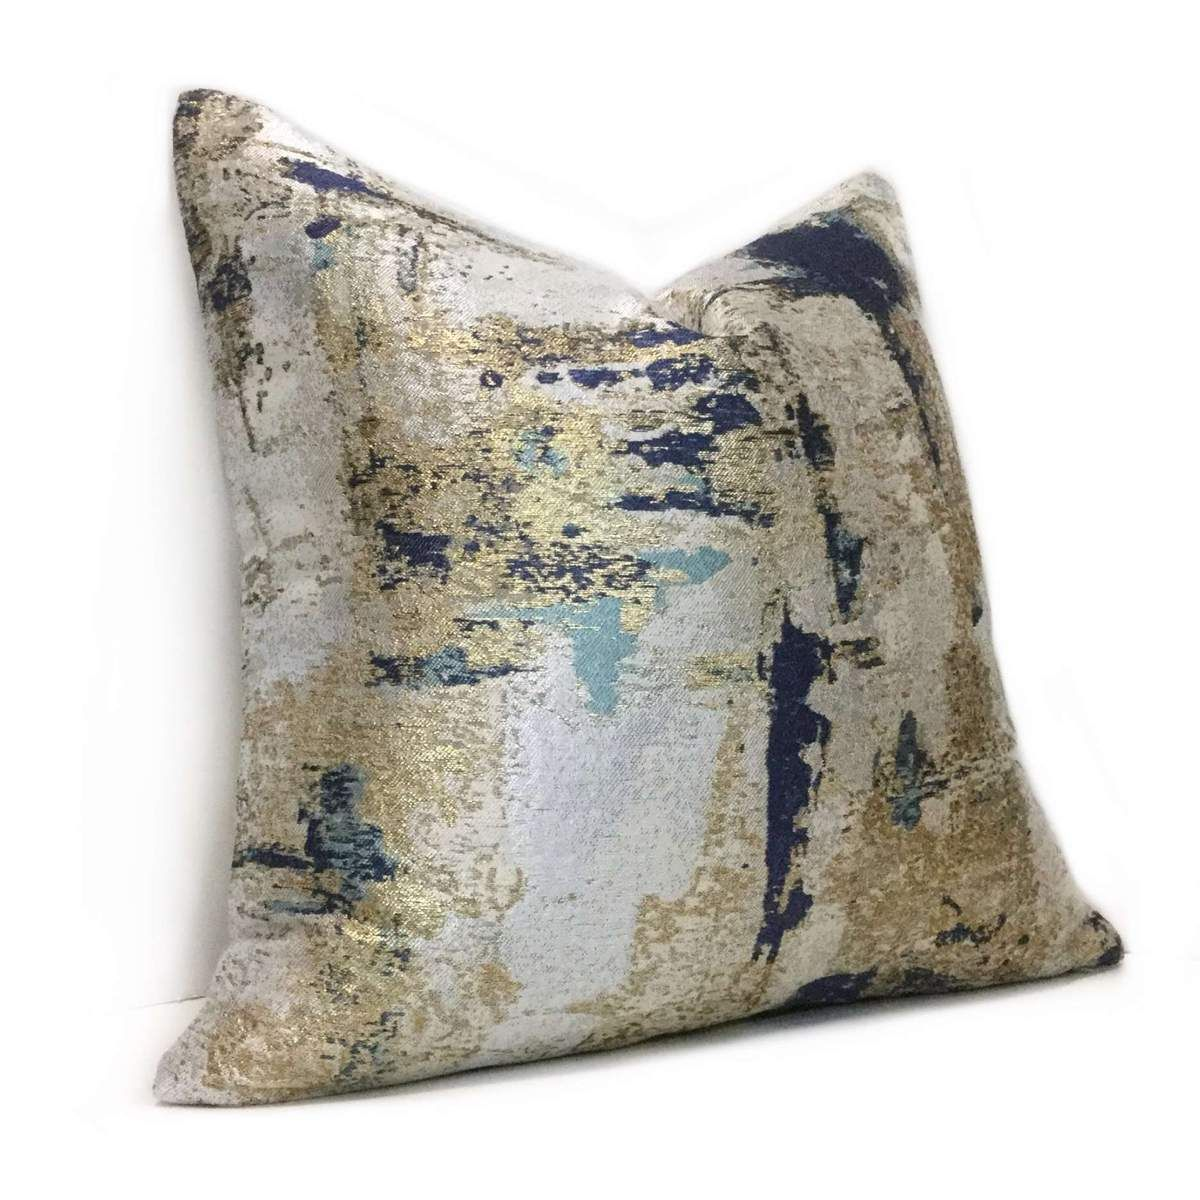 Metallic Gold Blue Gray Quartz Texture Pillow Cover Aloriam Pillow Texture Decorative Pillow Covers Pillows